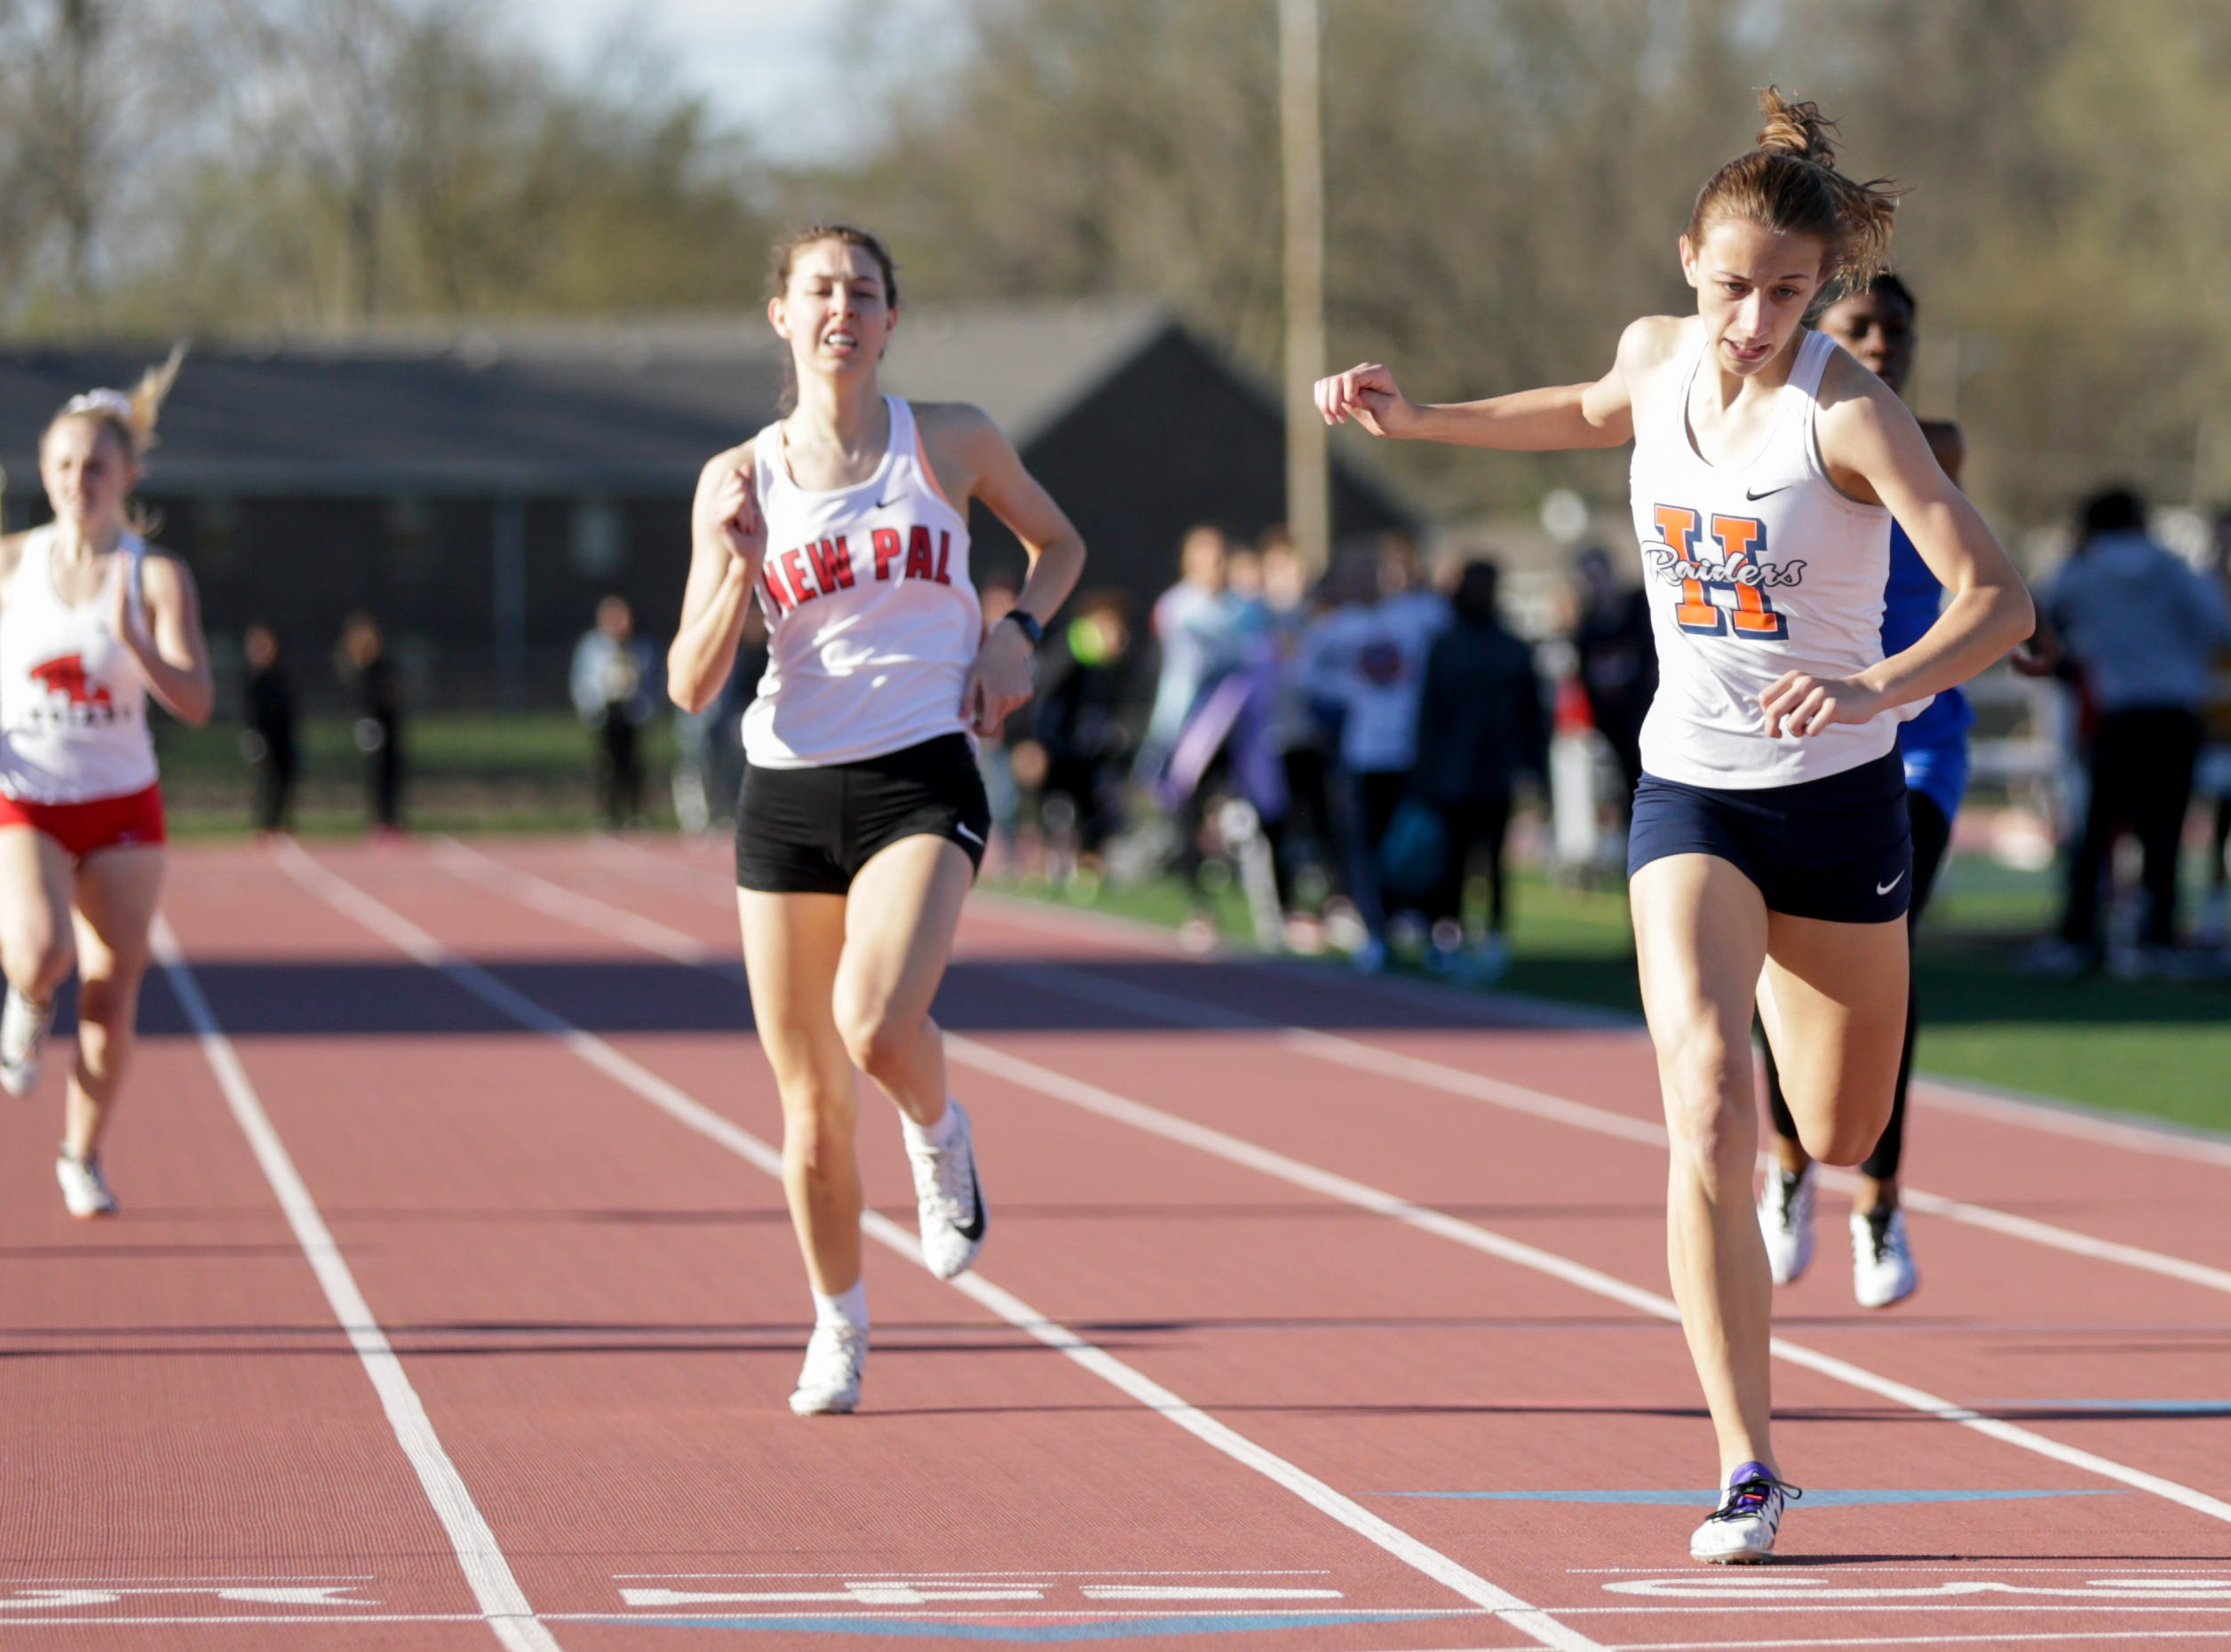 Harrison's Jaylie Lahmeyer competes in the women's 400 meter dash during the 2019 Sprinters Showcase, Friday, April 12, 2019, at Lafayette Jeff High School in Lafayette.